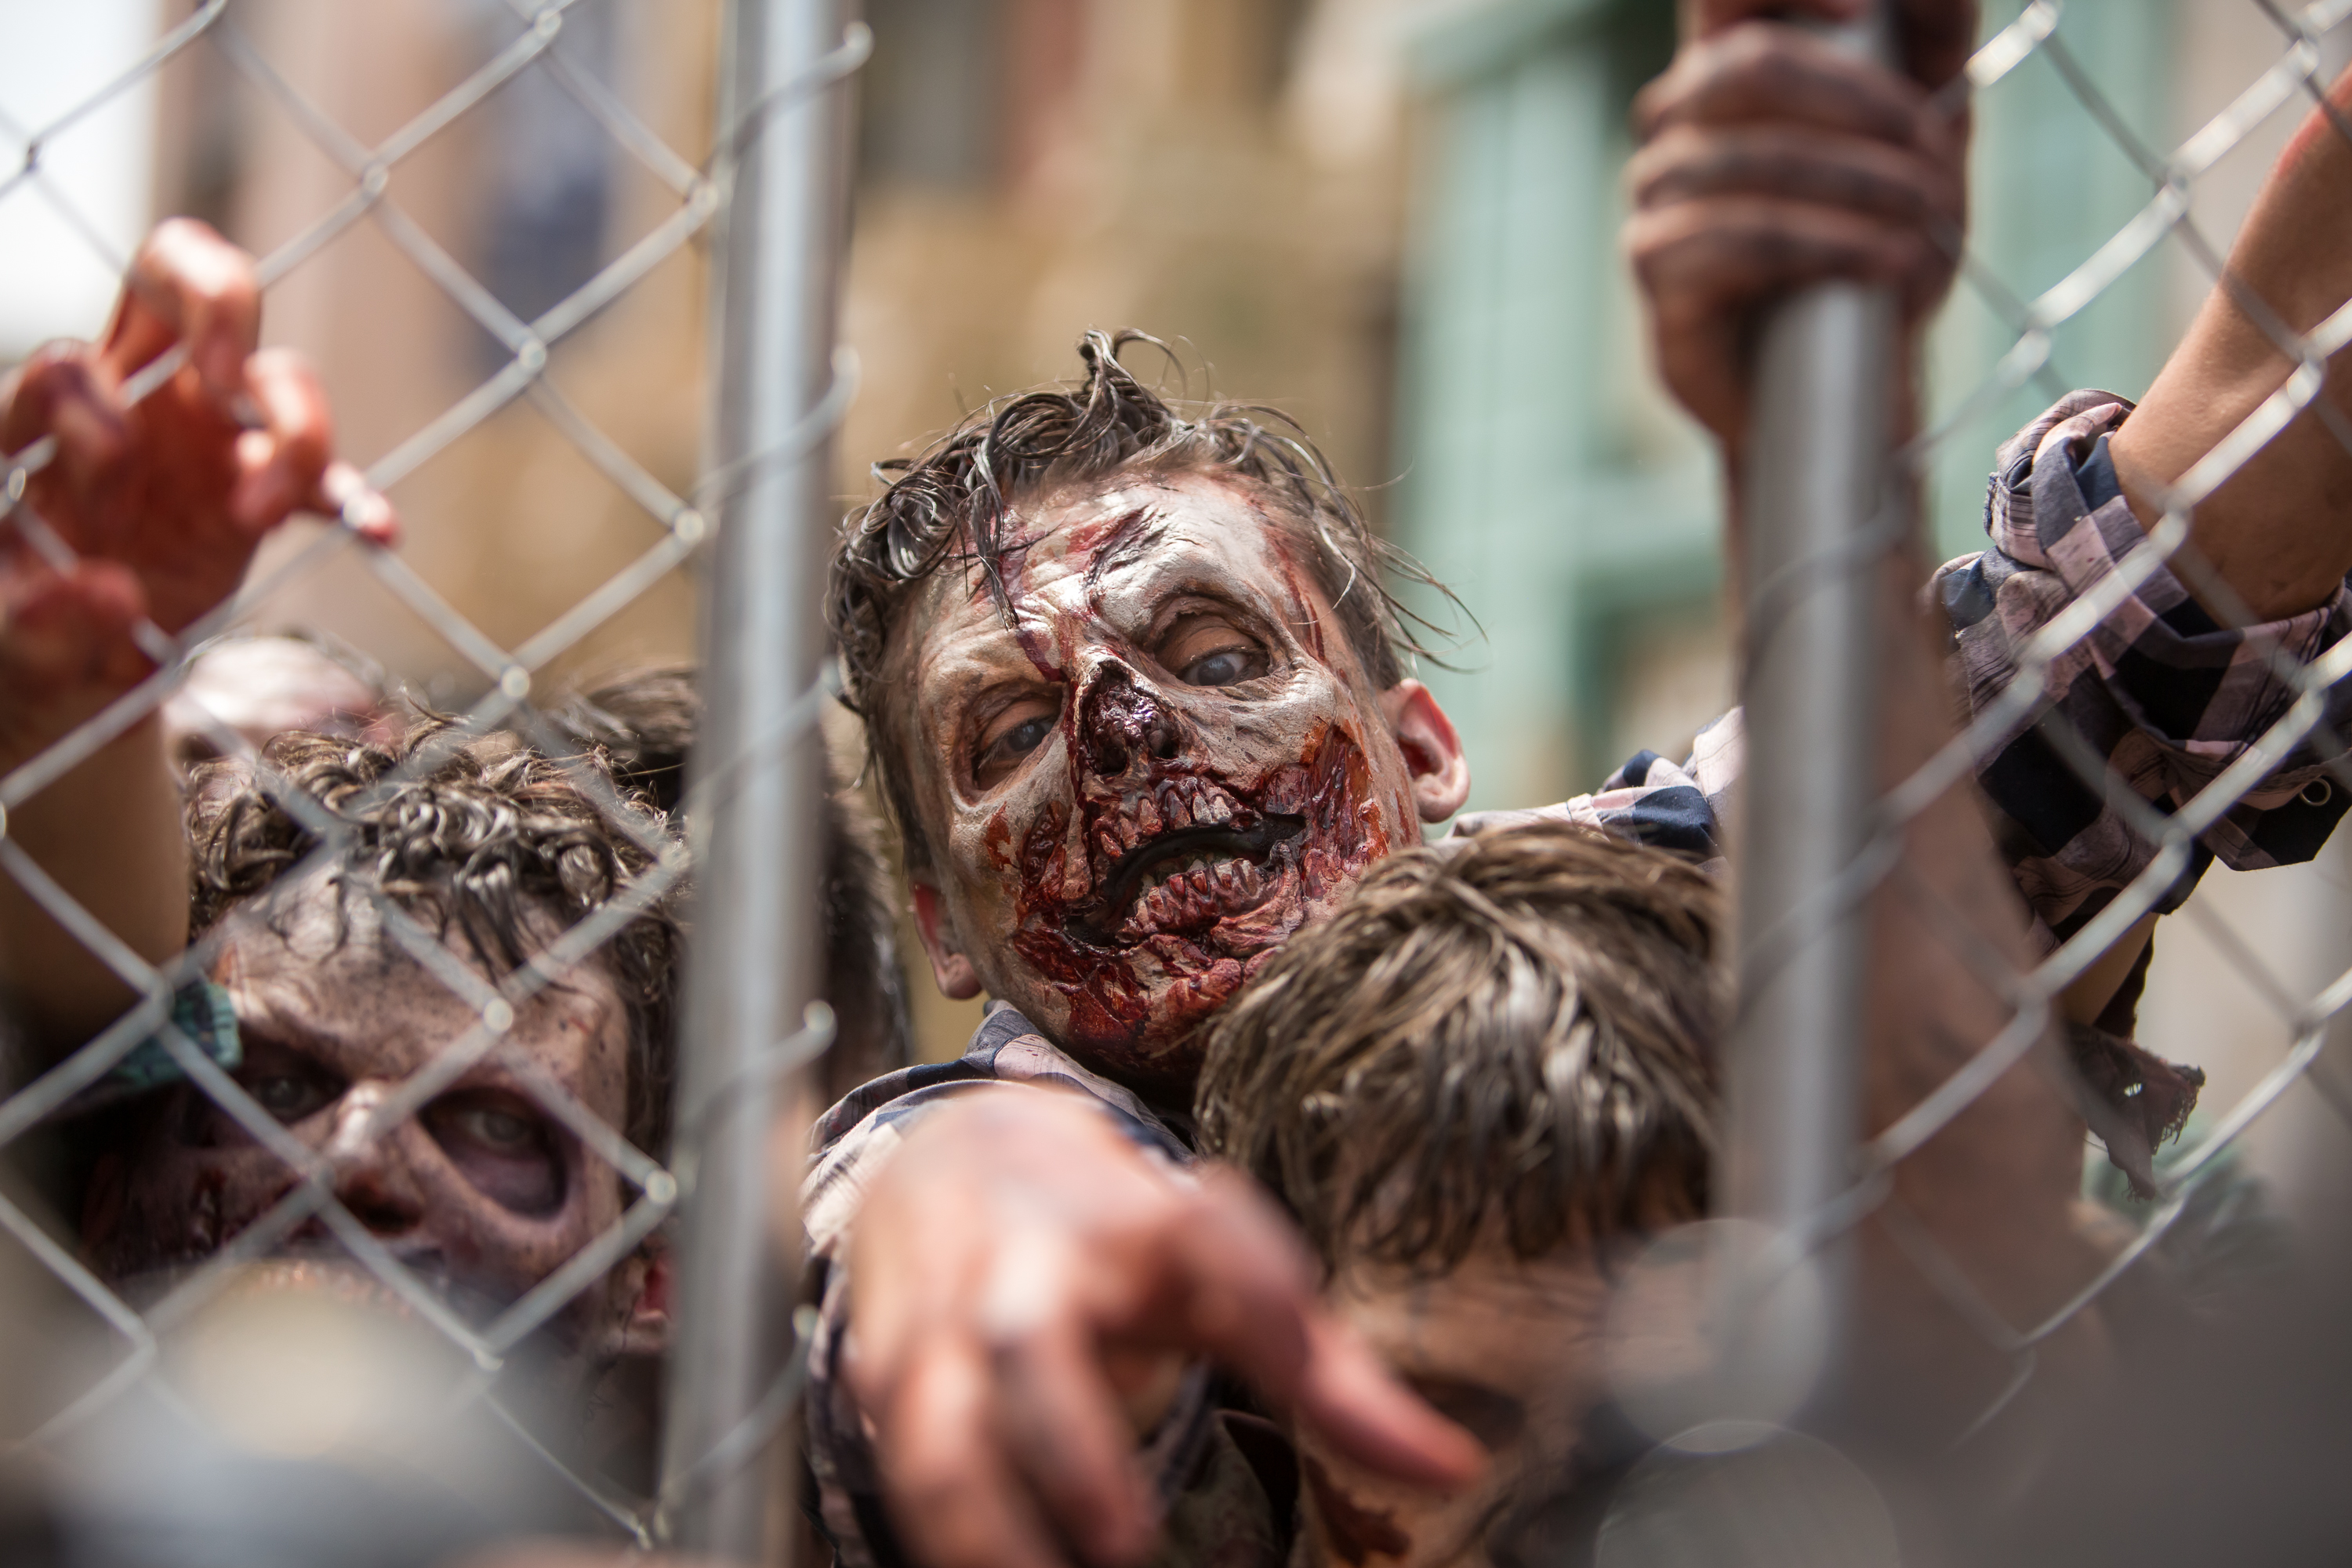 """Press Event For """"The Walking Dead"""" Attraction """"Don't Open, Dead Inside"""" At Universal Studios Hollywood - Arrivals"""